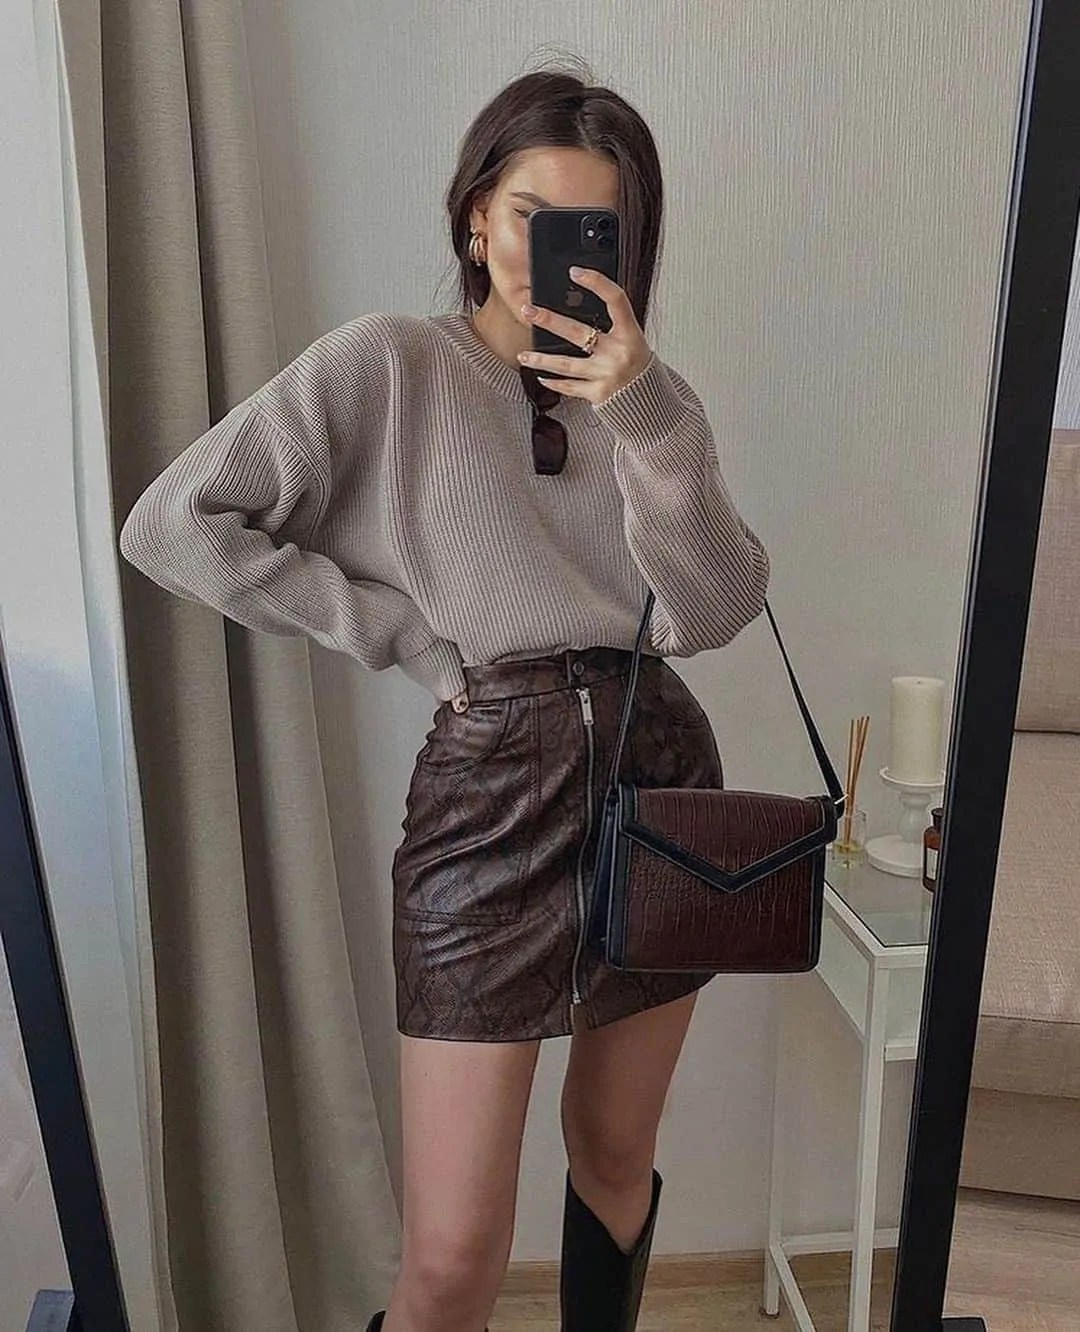 100+ fashion inspo outfits that you have to see no matter what your style is 147